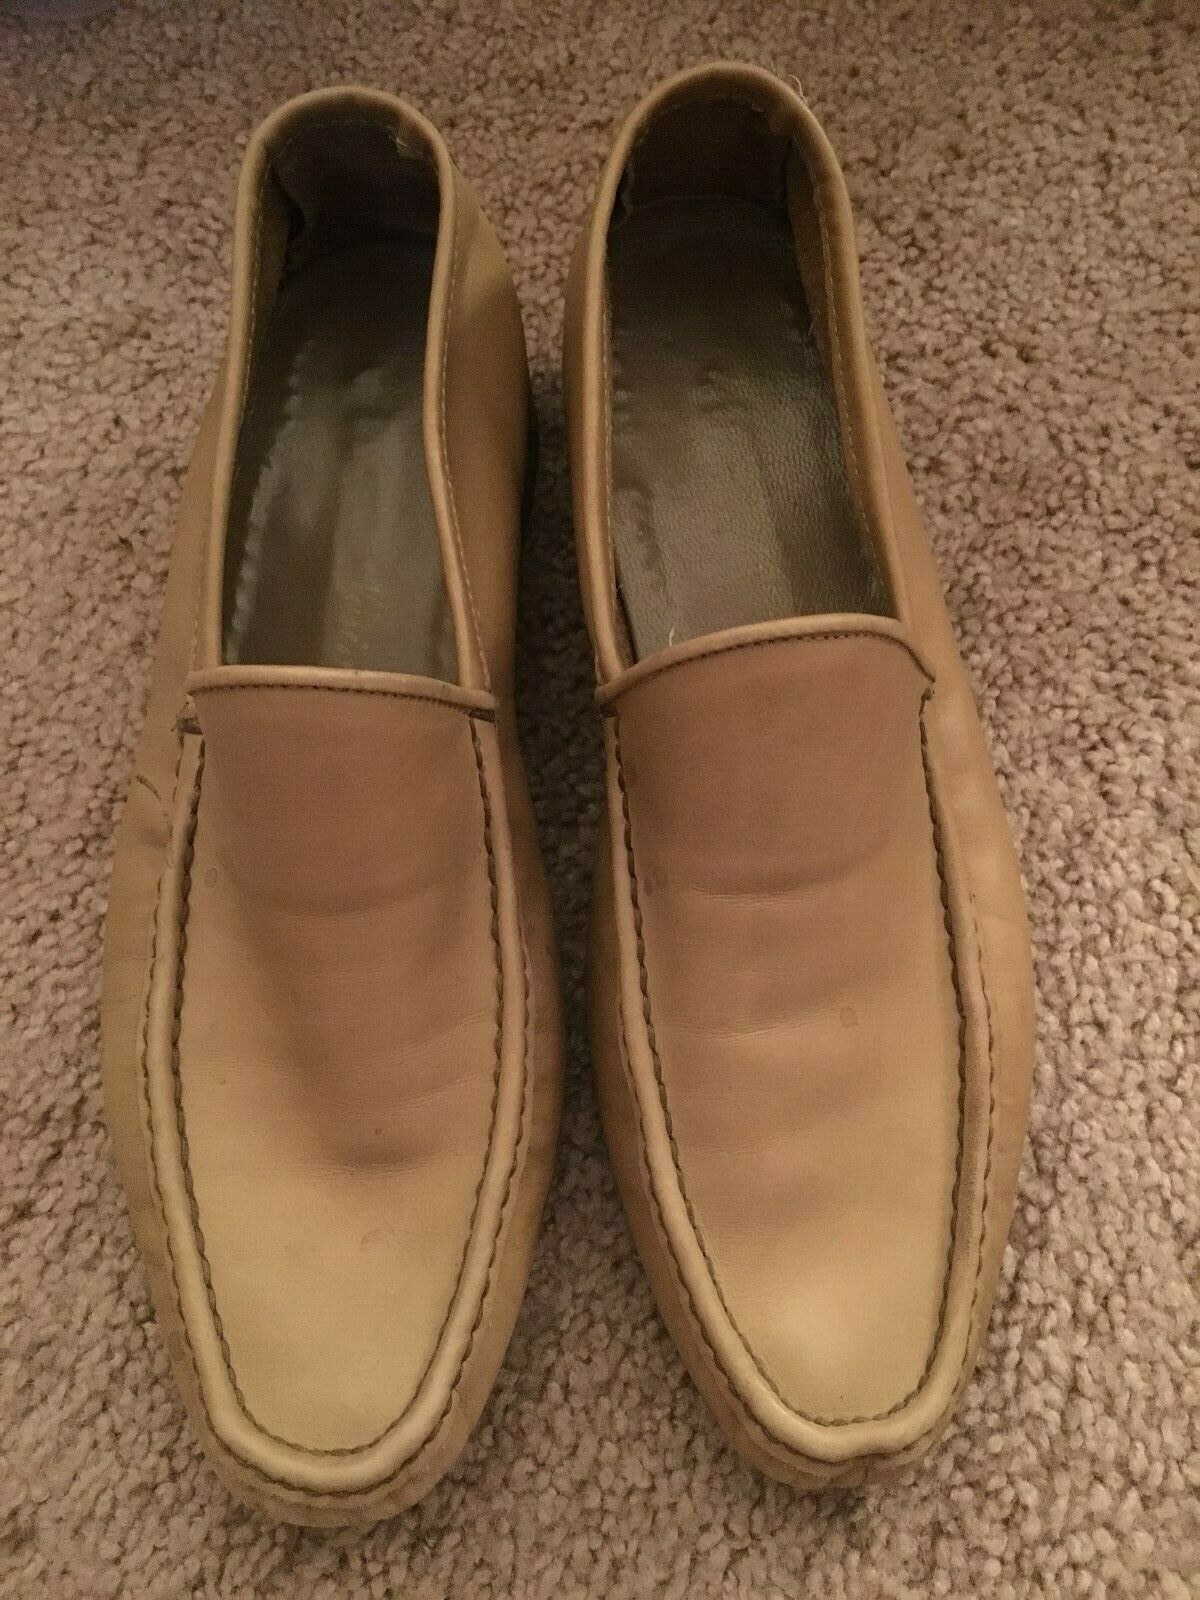 Mens DIor Mustard Loafers - Size 8.5